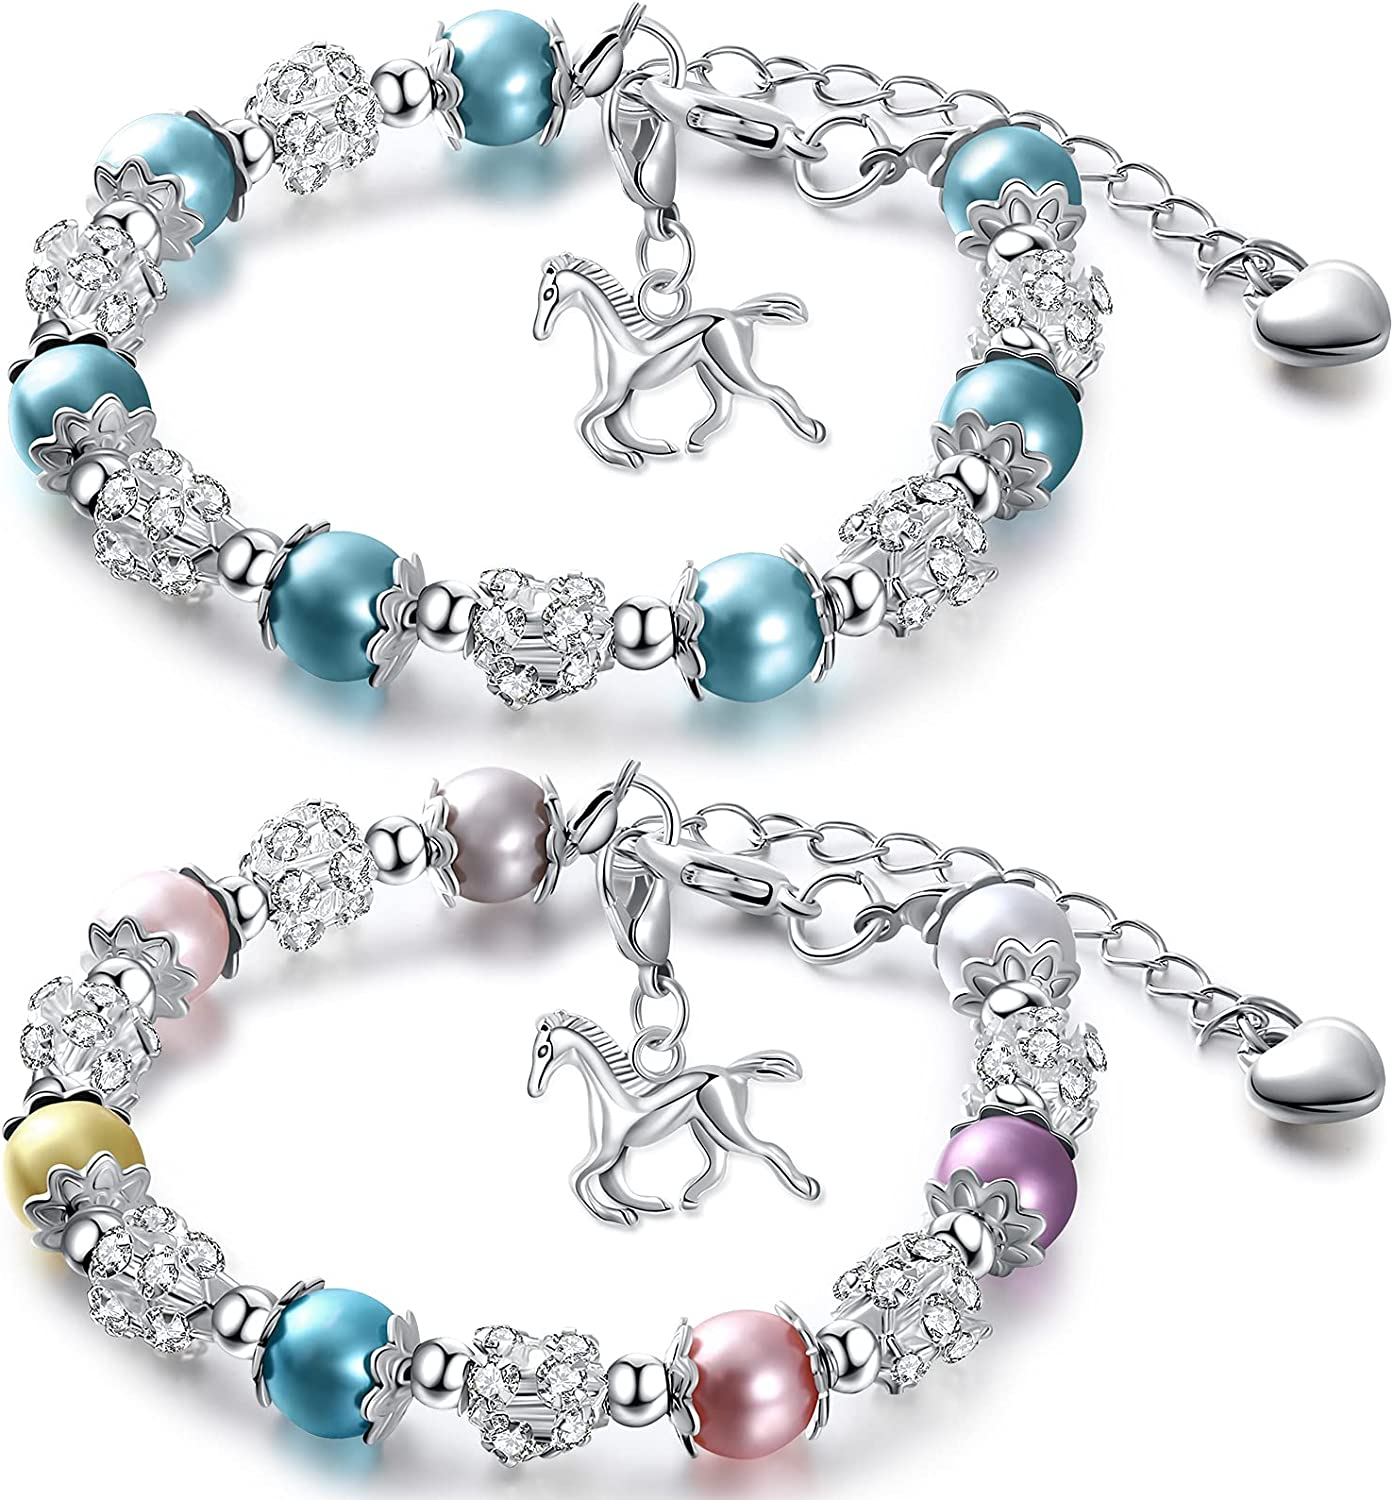 2 Today's only Pieces Girls Max 70% OFF Horse Beaded Charm Bracelet Crystal Hand